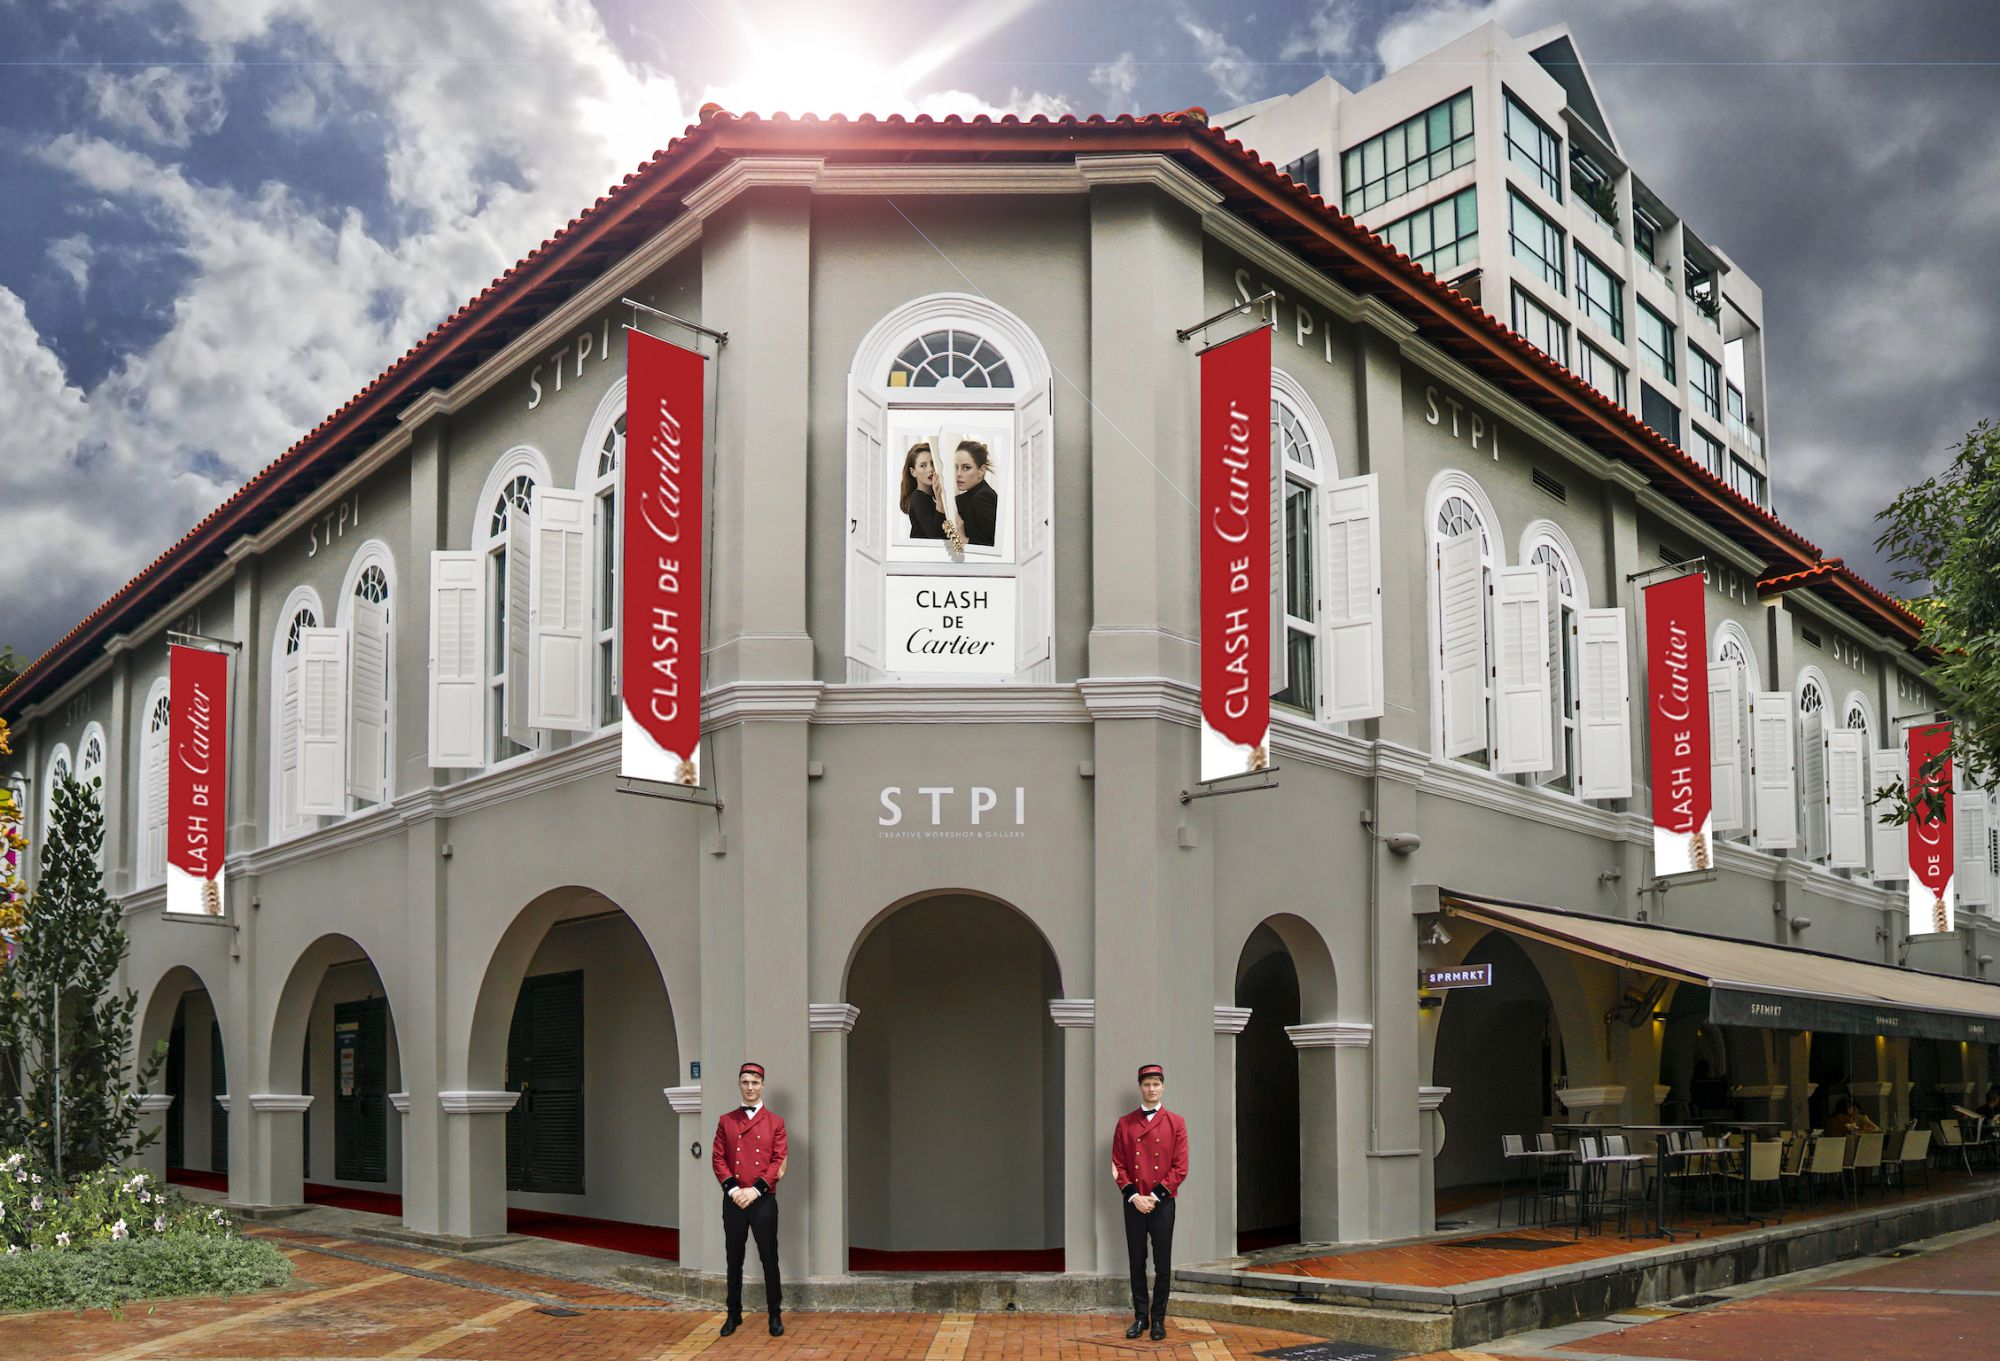 The Clash De Cartier Studio Pop-Up Comes To Singapore For One Weekend Only In November